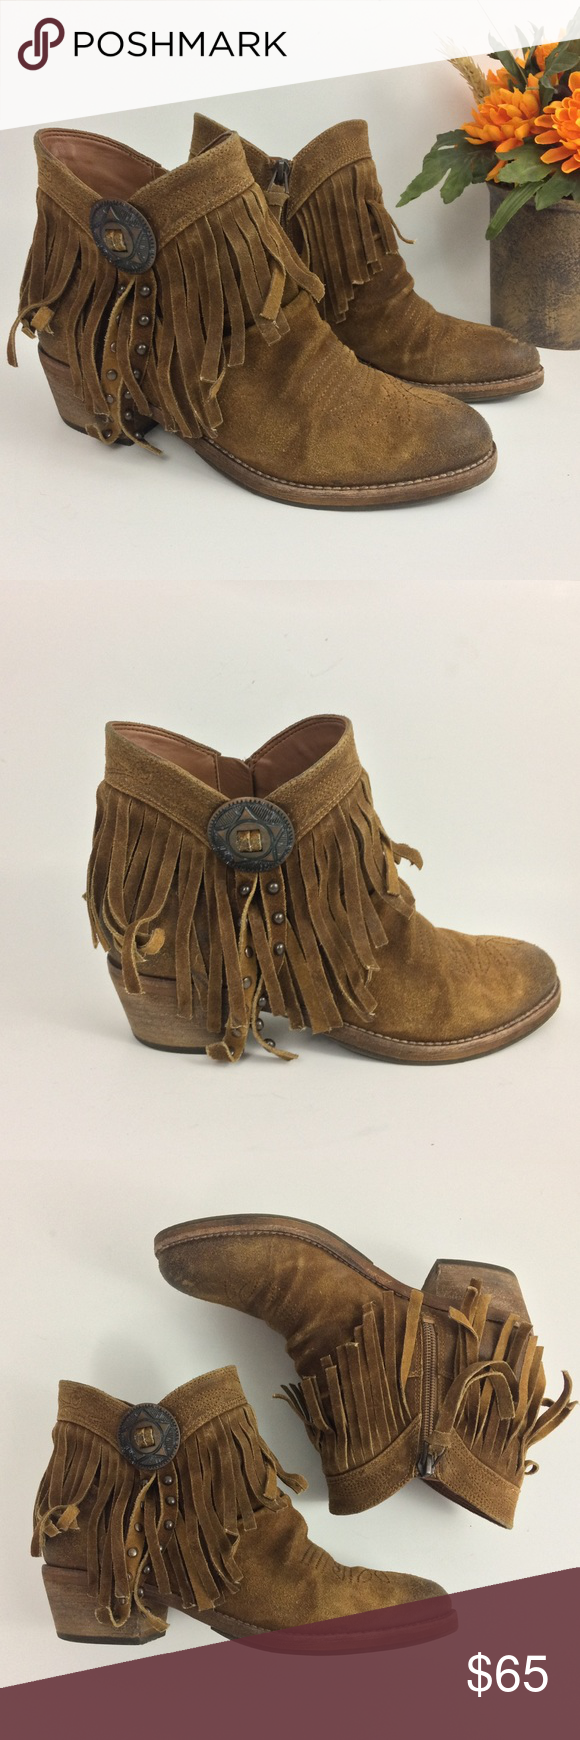 ae1b30a4a SAM EDELMAN ~Sidney~ Brown Fringe Bootie Size 6 Ankle boots from Sam Edelman  Side zipper Excellent condition Sam Edelman Shoes Ankle Boots   Booties